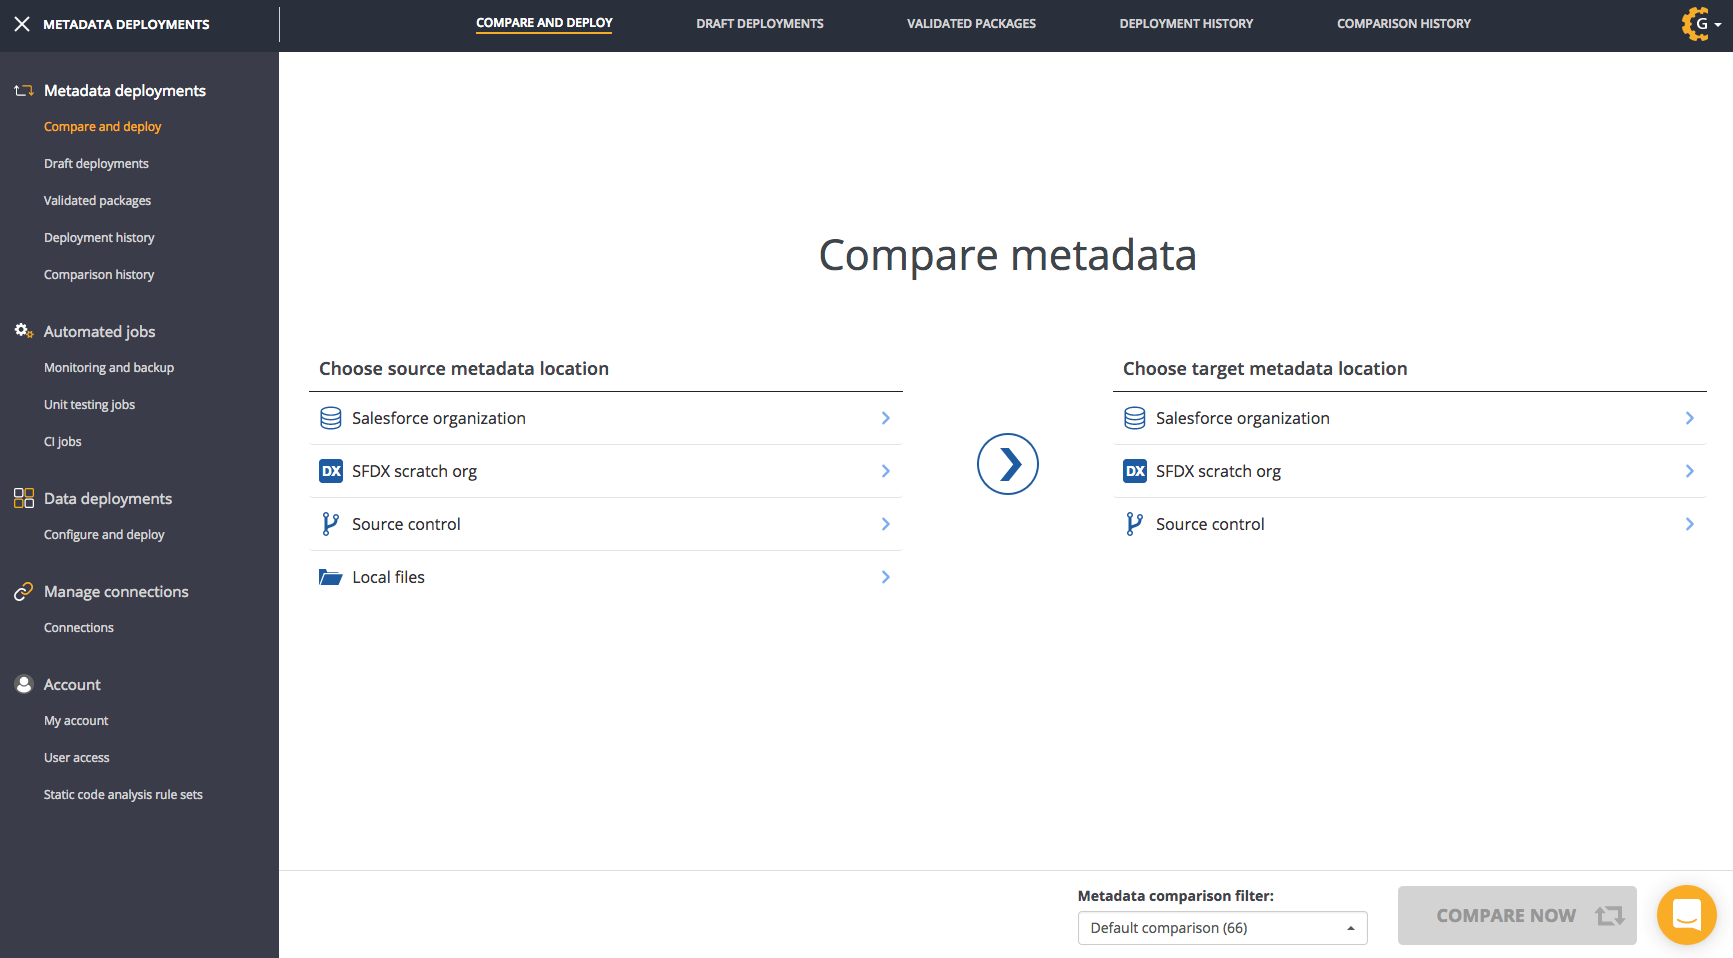 After logging in you'll be taken to the compare and deploy page